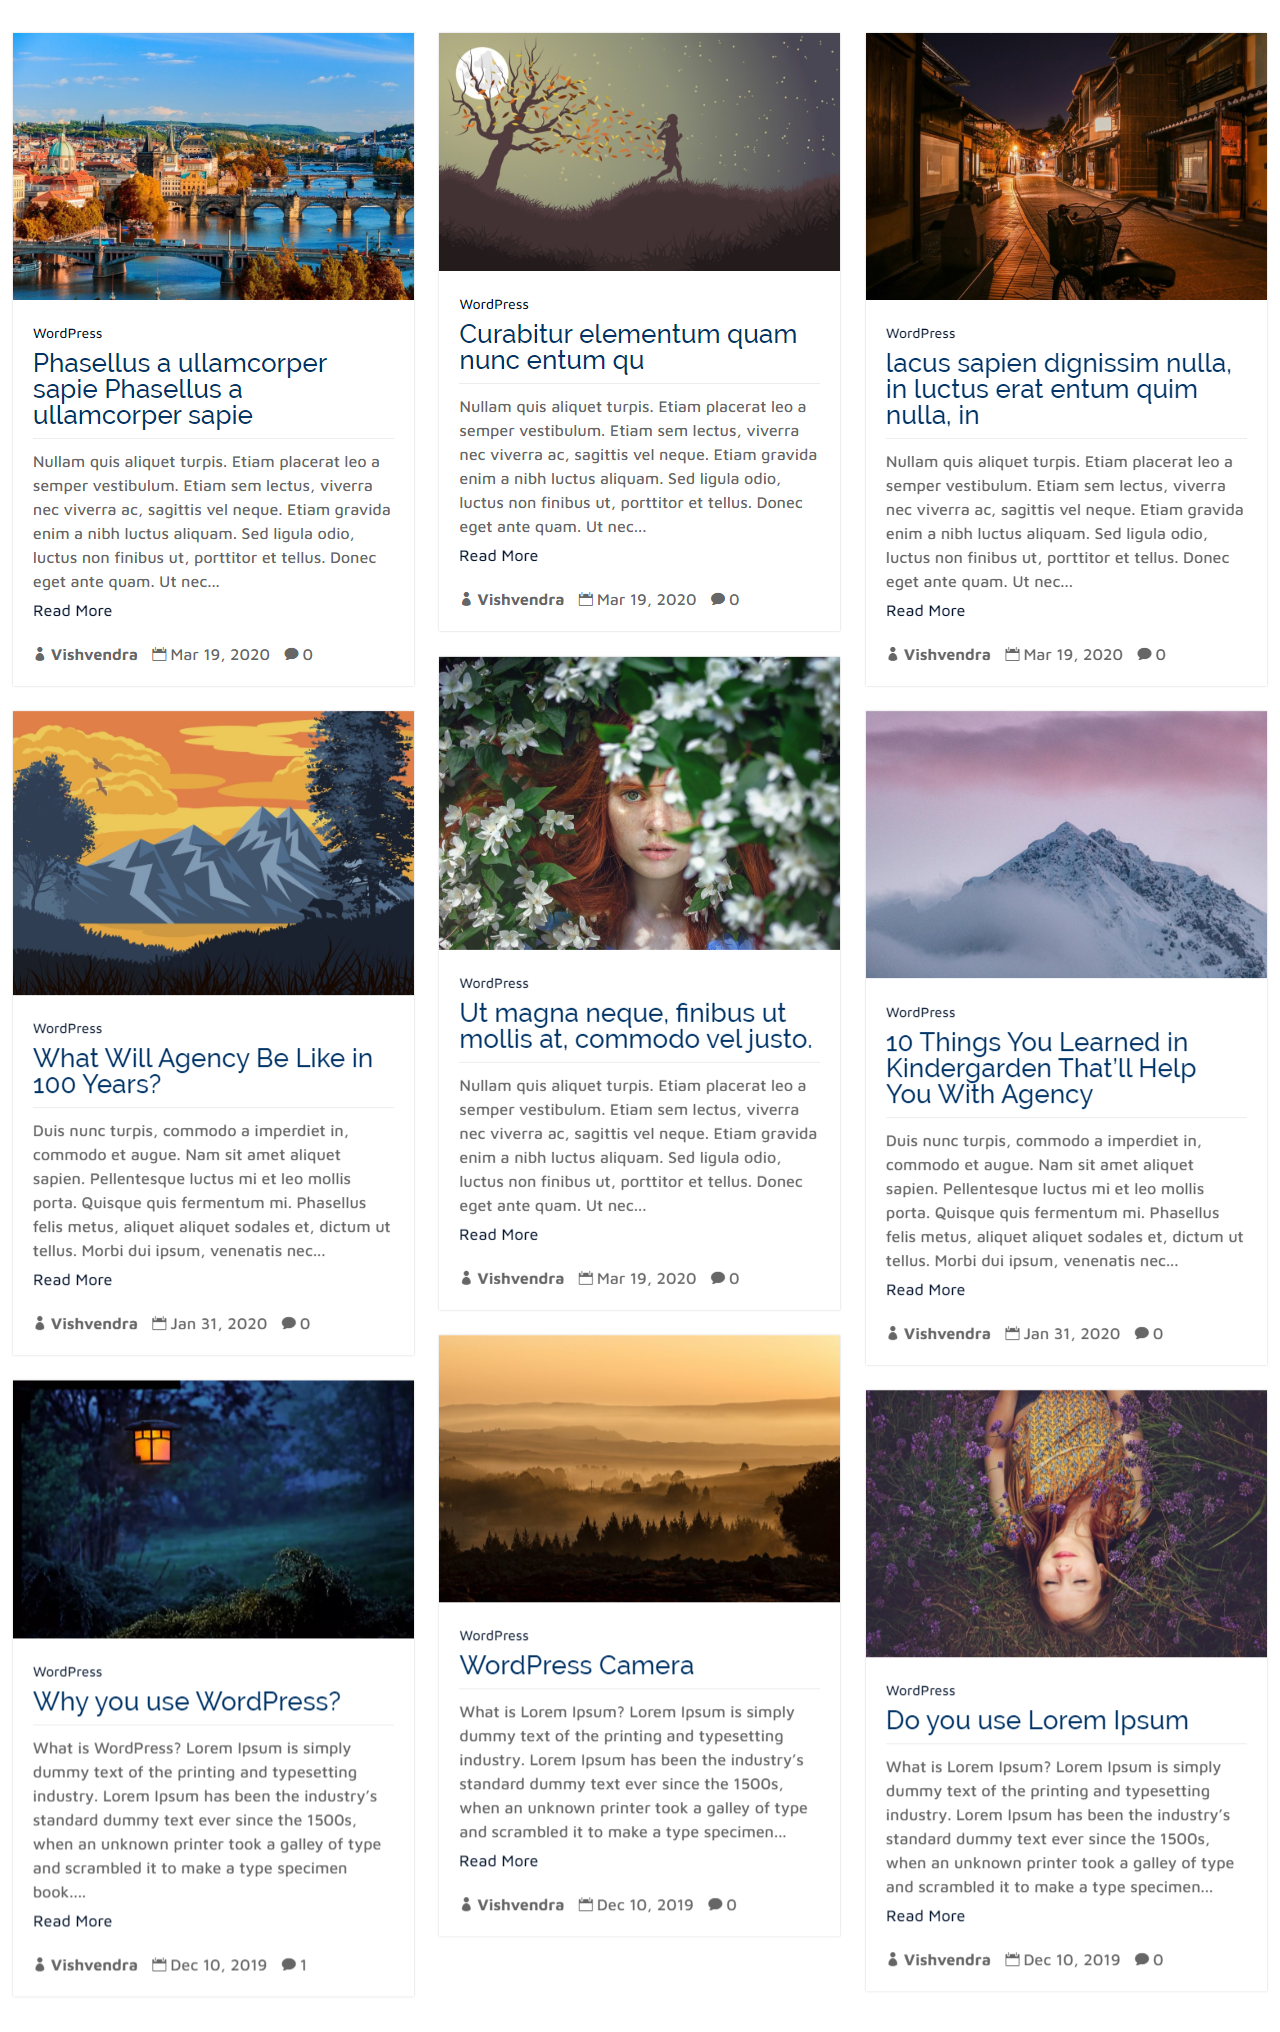 Masonry Layout Example of the Divi Blog Extras